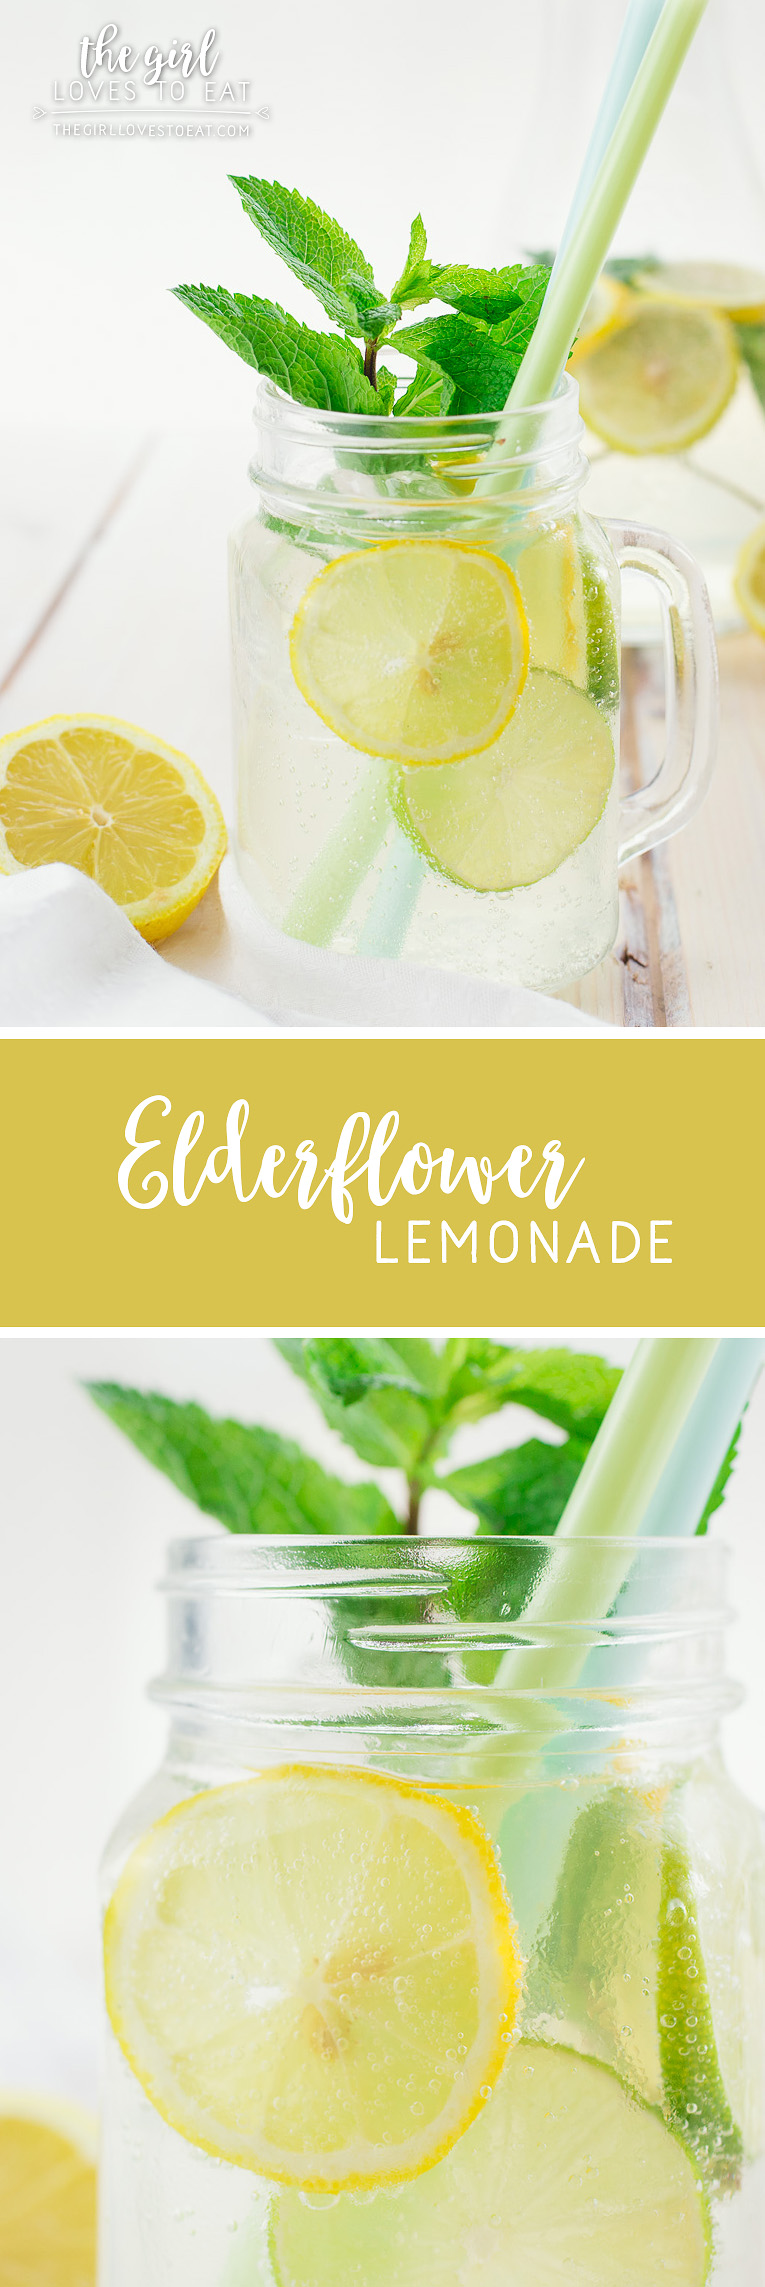 Elderflower lemonade { thegirllovestoeat.com }